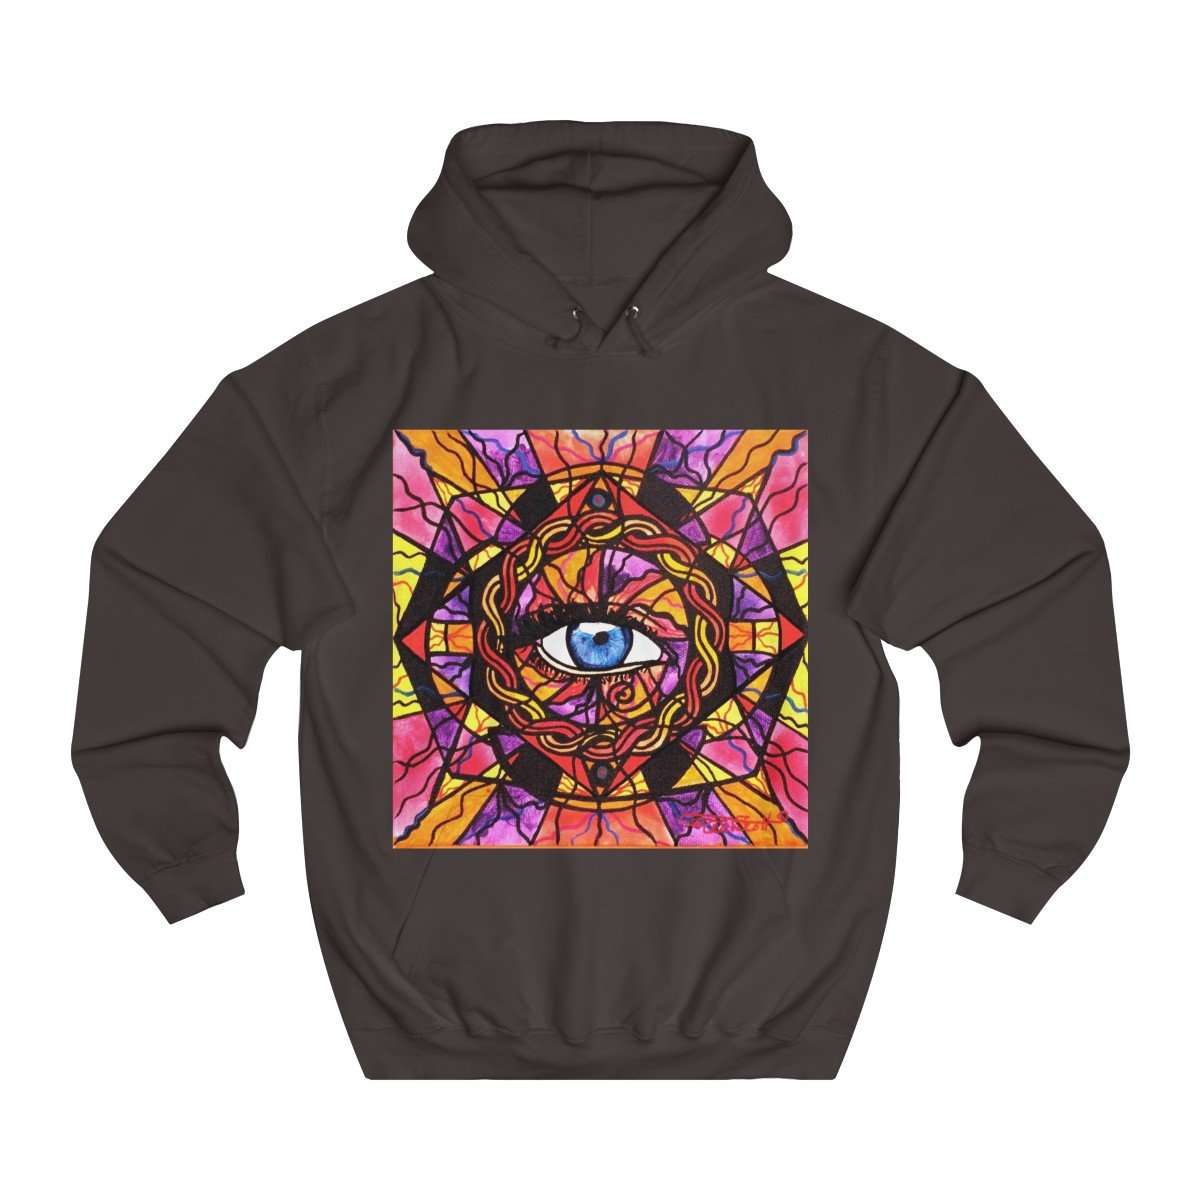 Confident Self Expression - Unisex College Hoodie